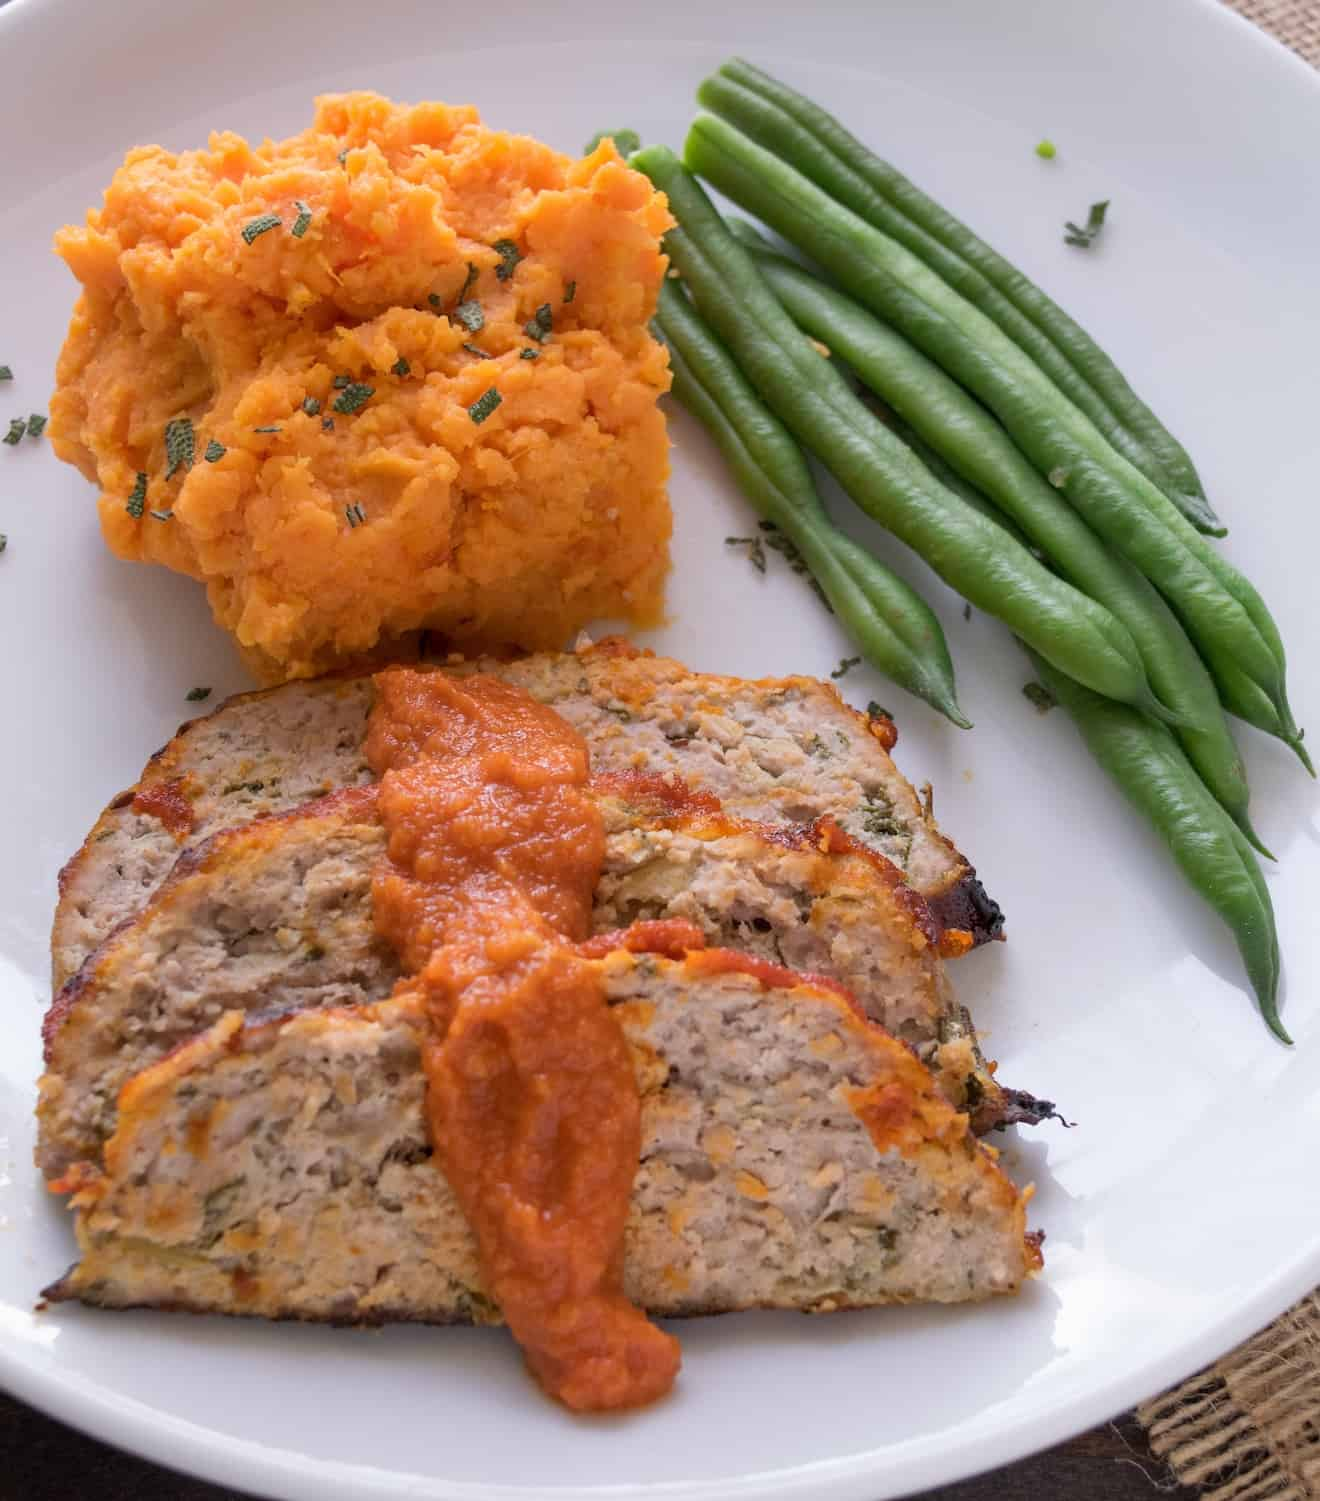 Sliced pork apple and sage meatloaf on a plate with green beans and mash